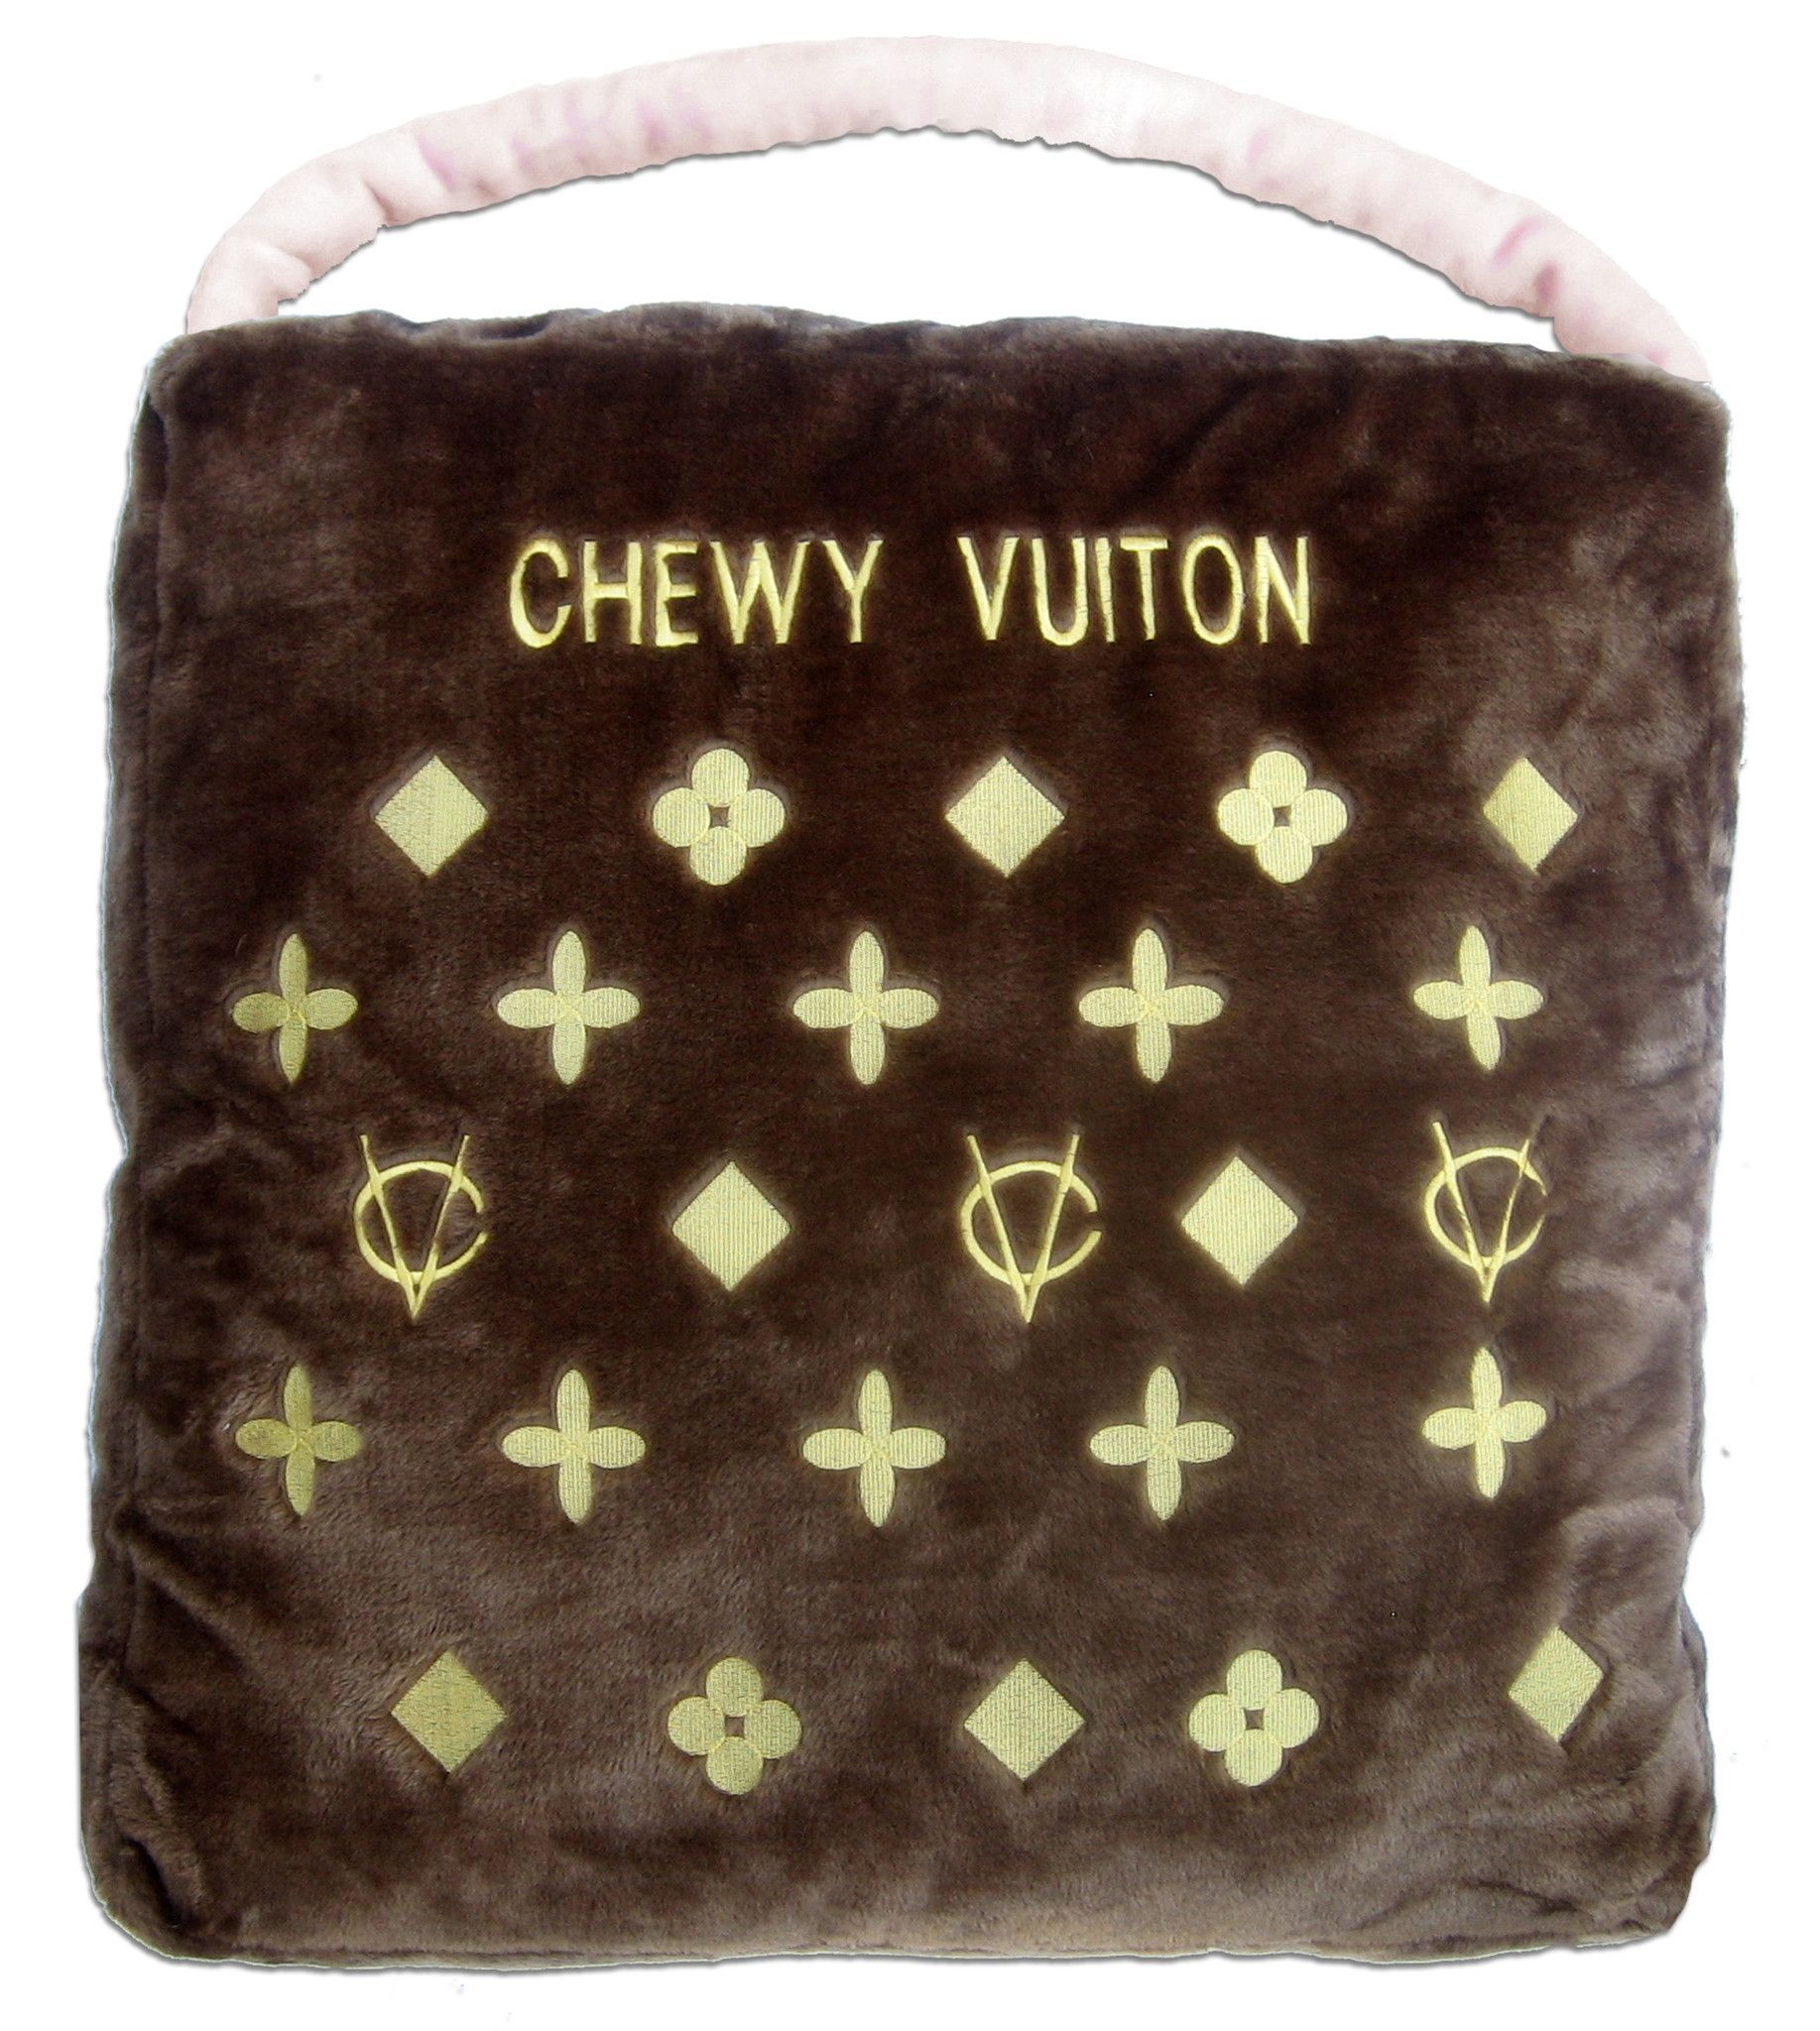 Chewy Vuiton Bed Designer pet beds, Plush pet bed, Dog